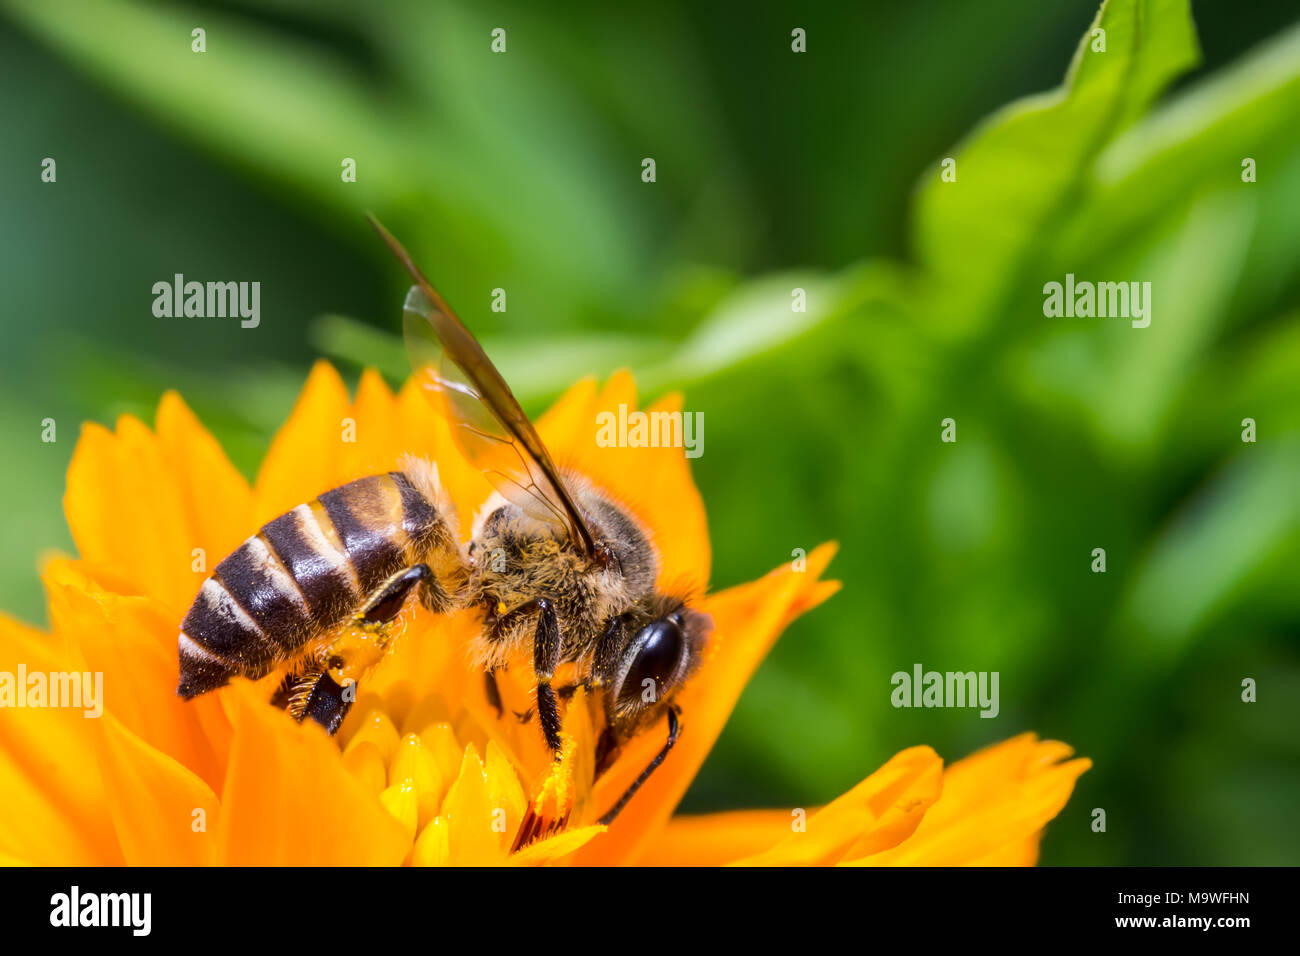 Bee sucking the Yellow Cosmos's syrup in the garden - Stock Image